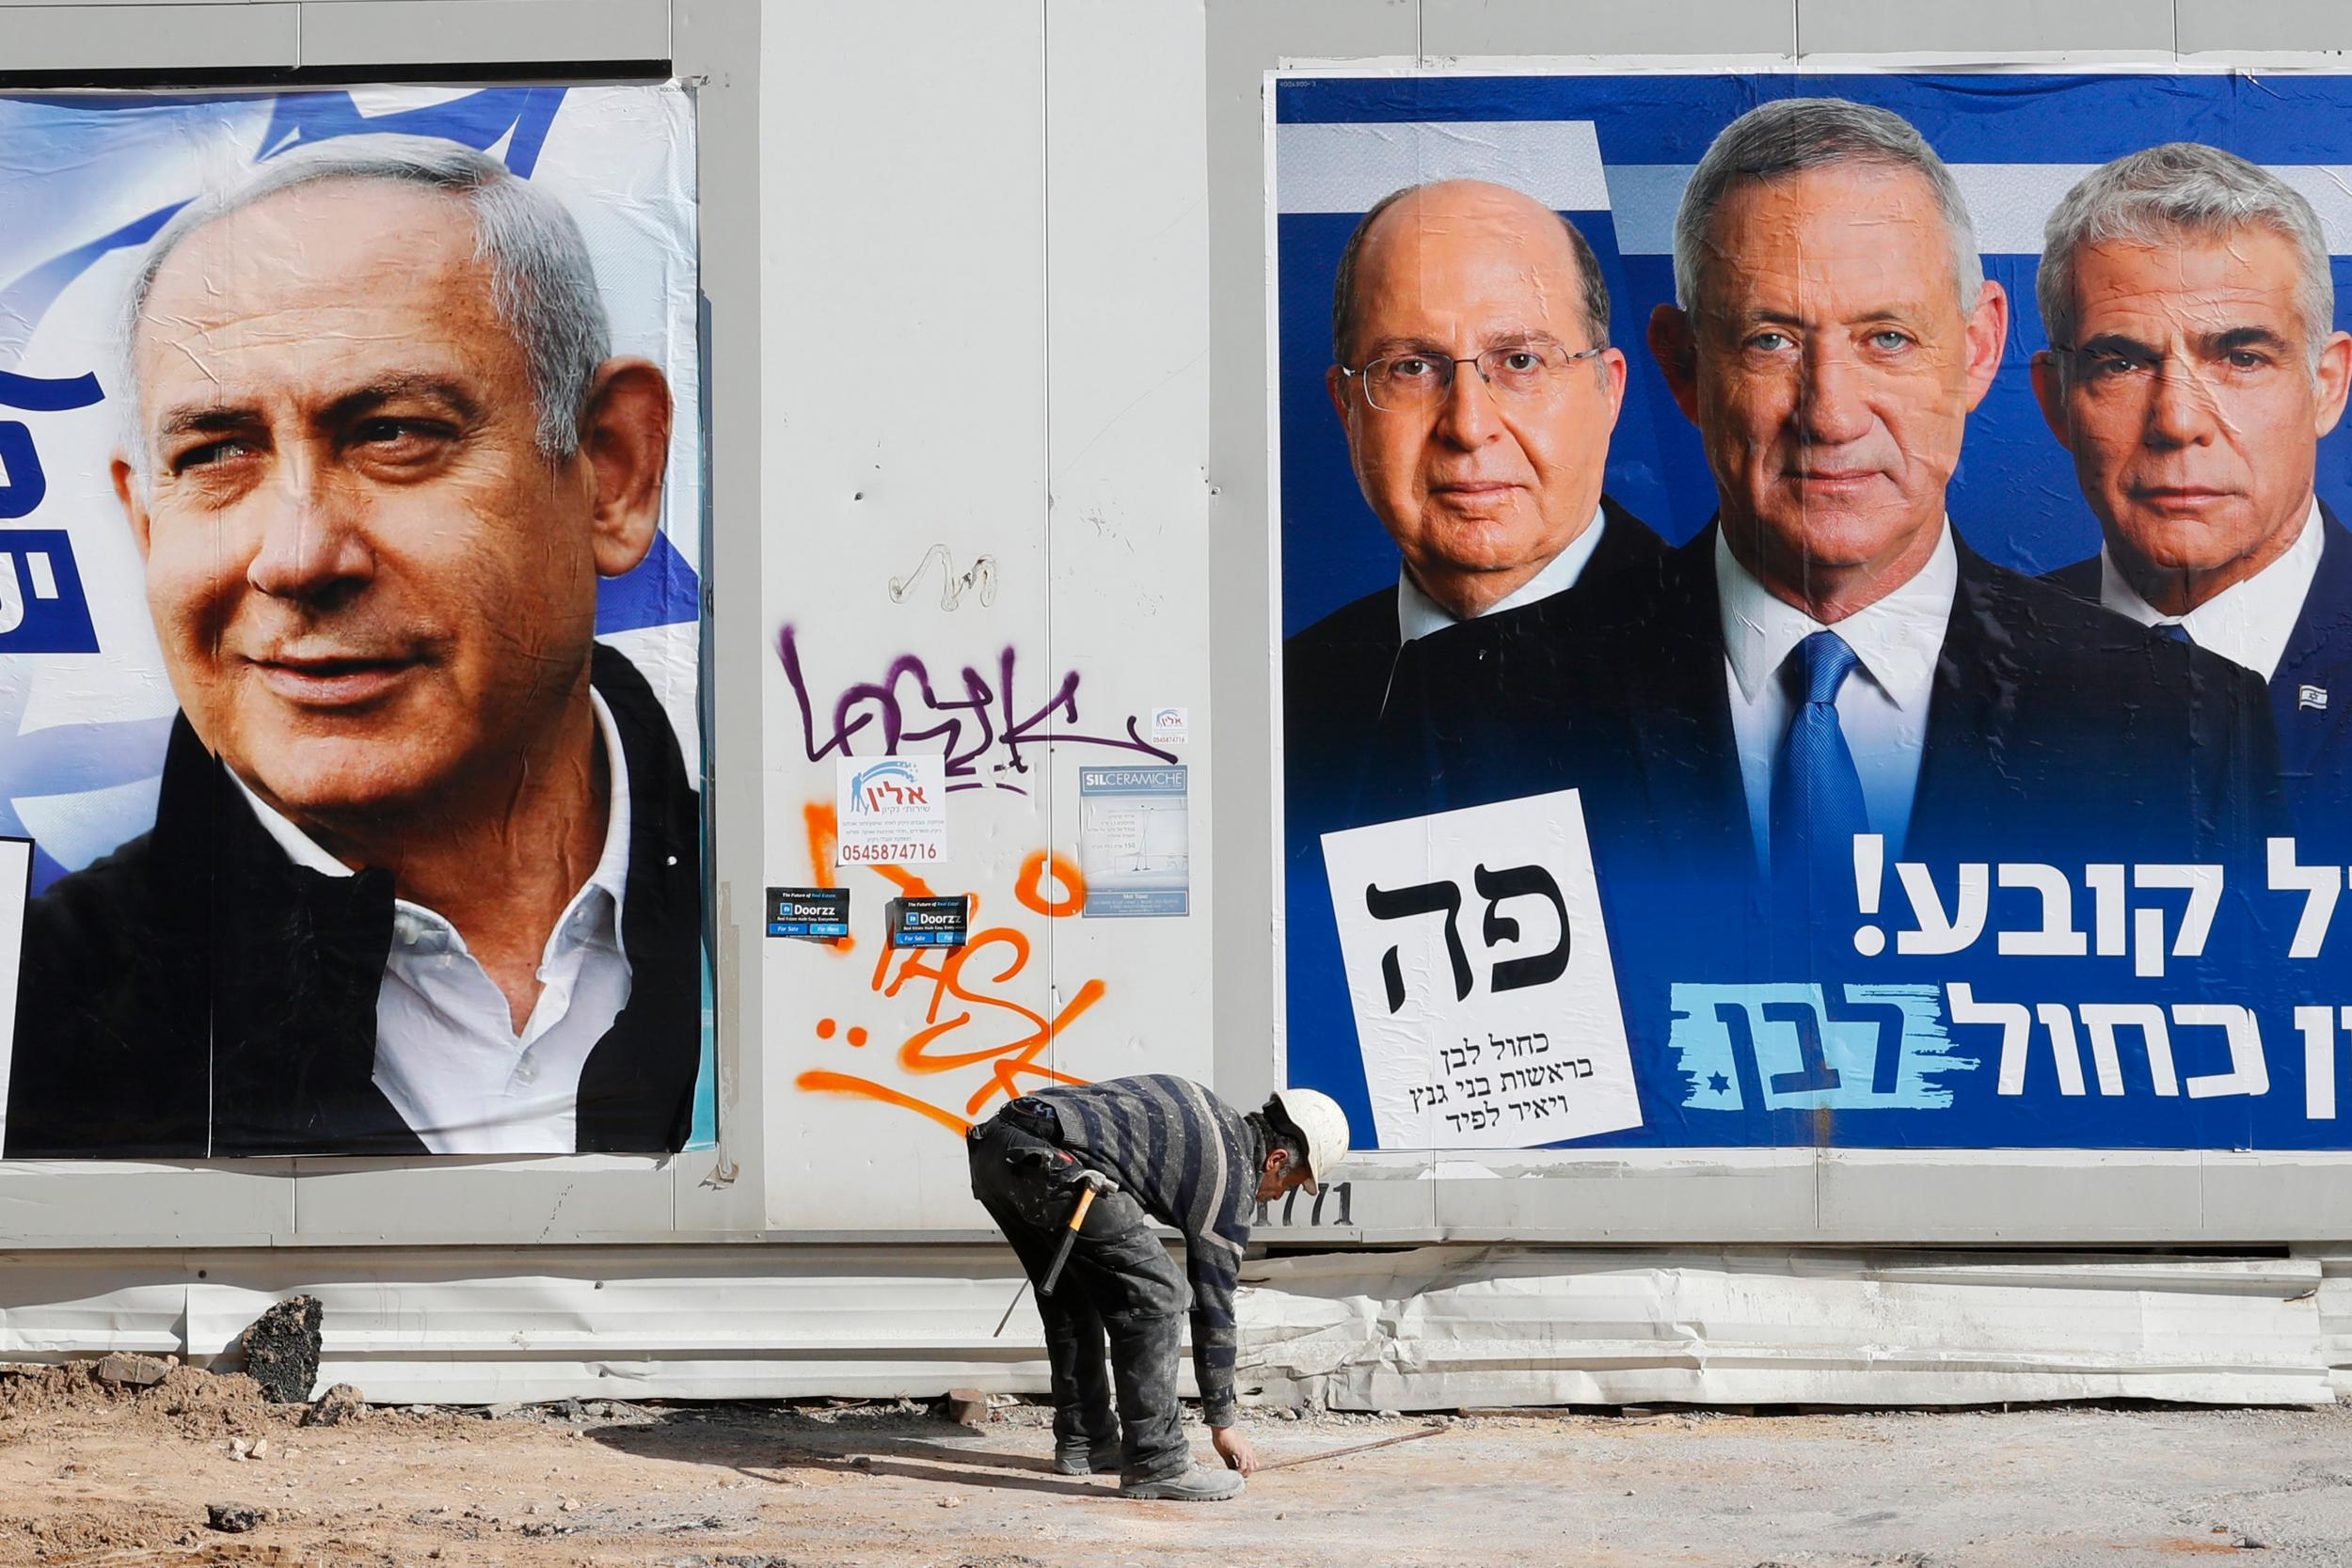 Israel to hold unprecedented third election in under a year, as political deadlock holds